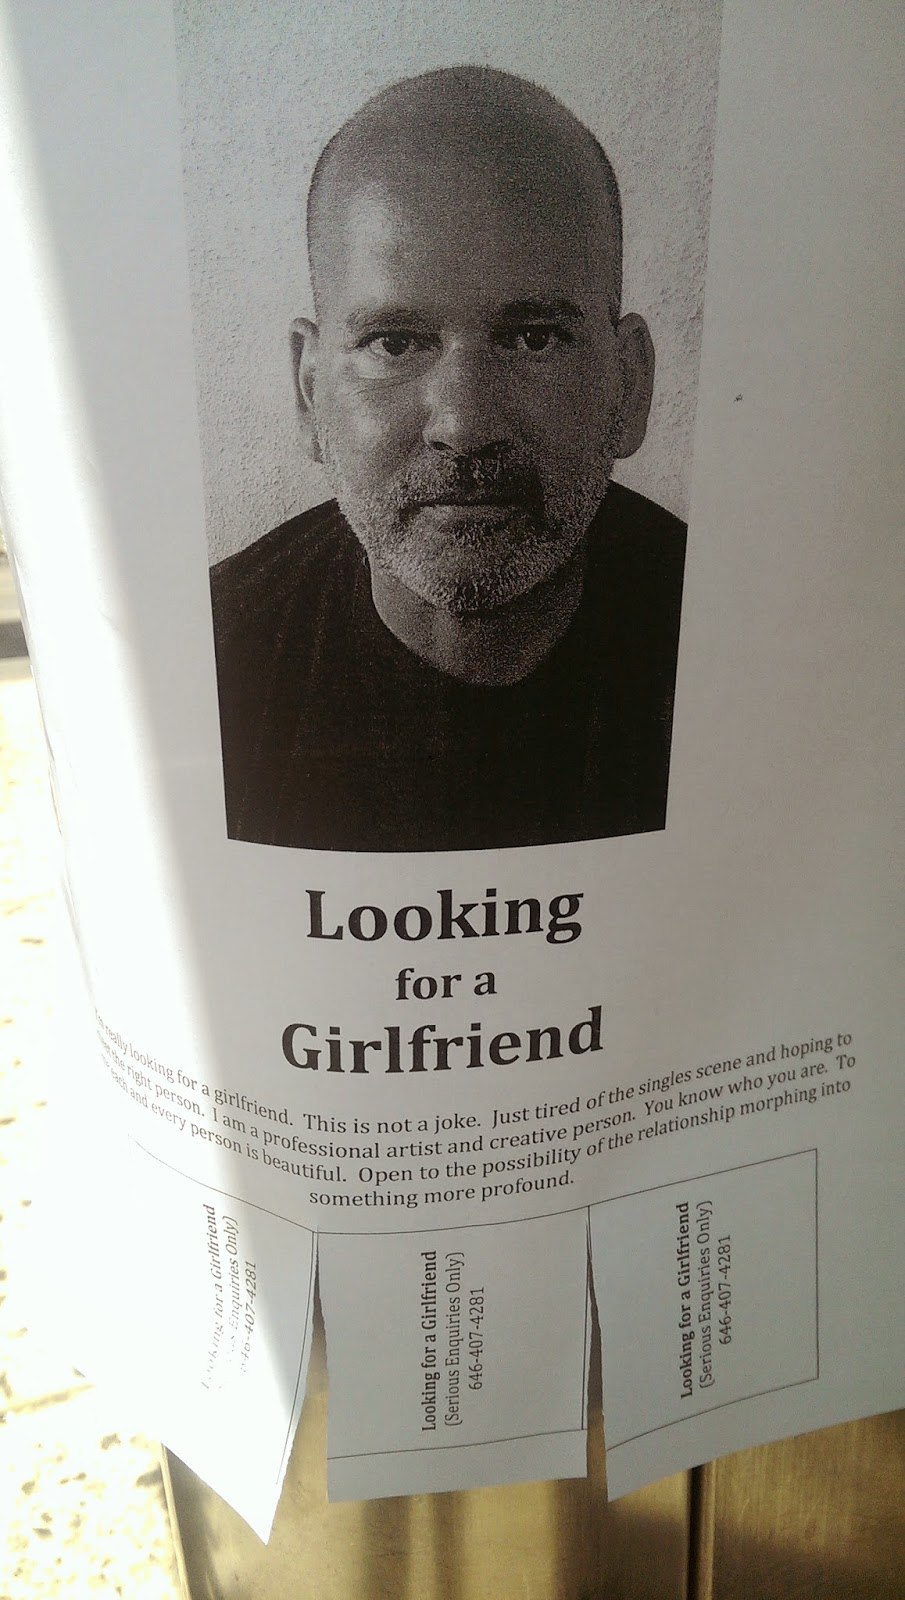 Artist looking for girlfriend in Chelsea NYC